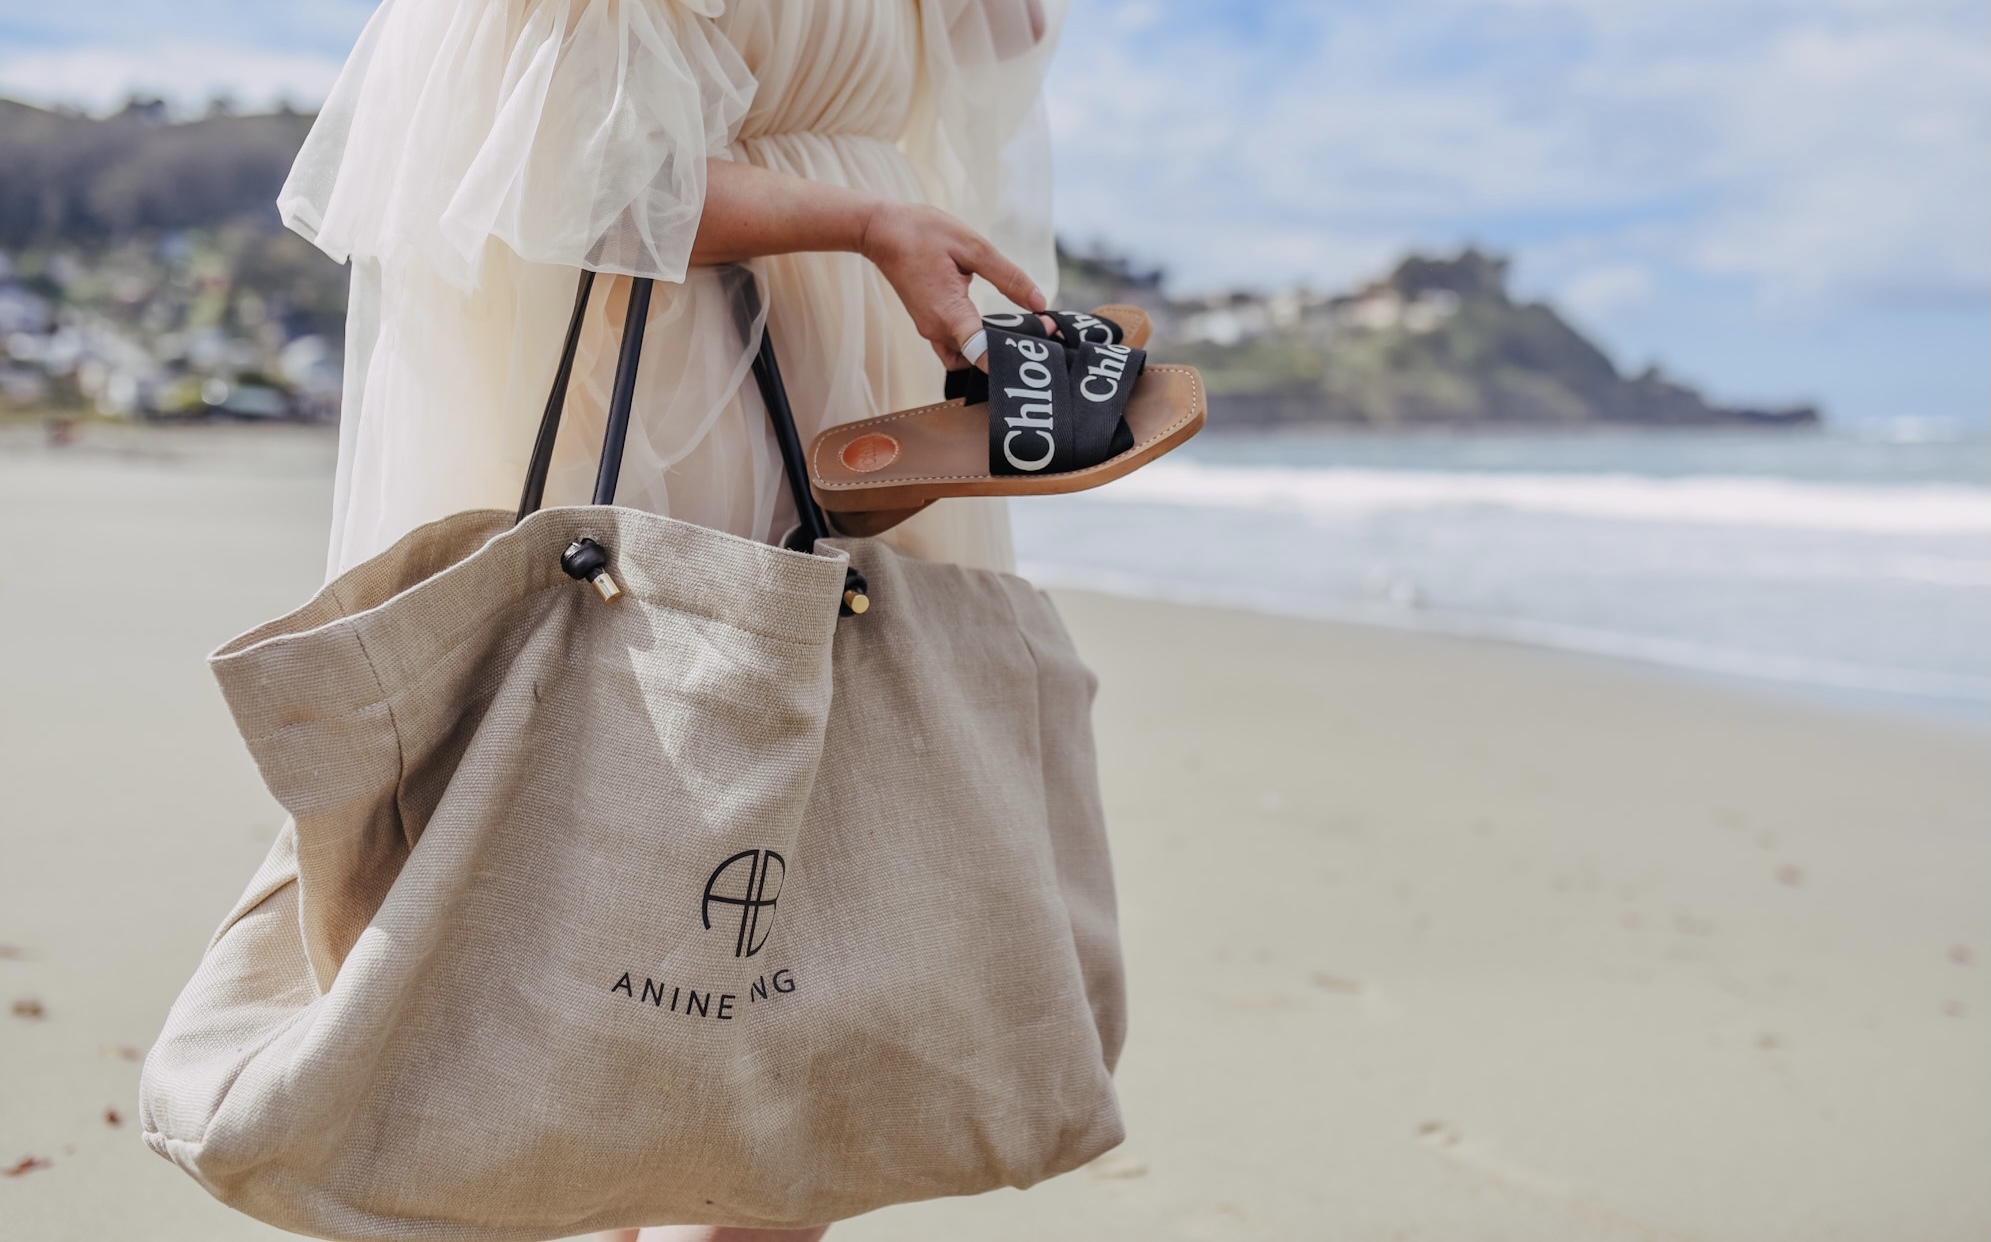 Anine Bing Large Saffron Tote, KatWalkSF holding the Chloé Woody Sandals in Pacifica